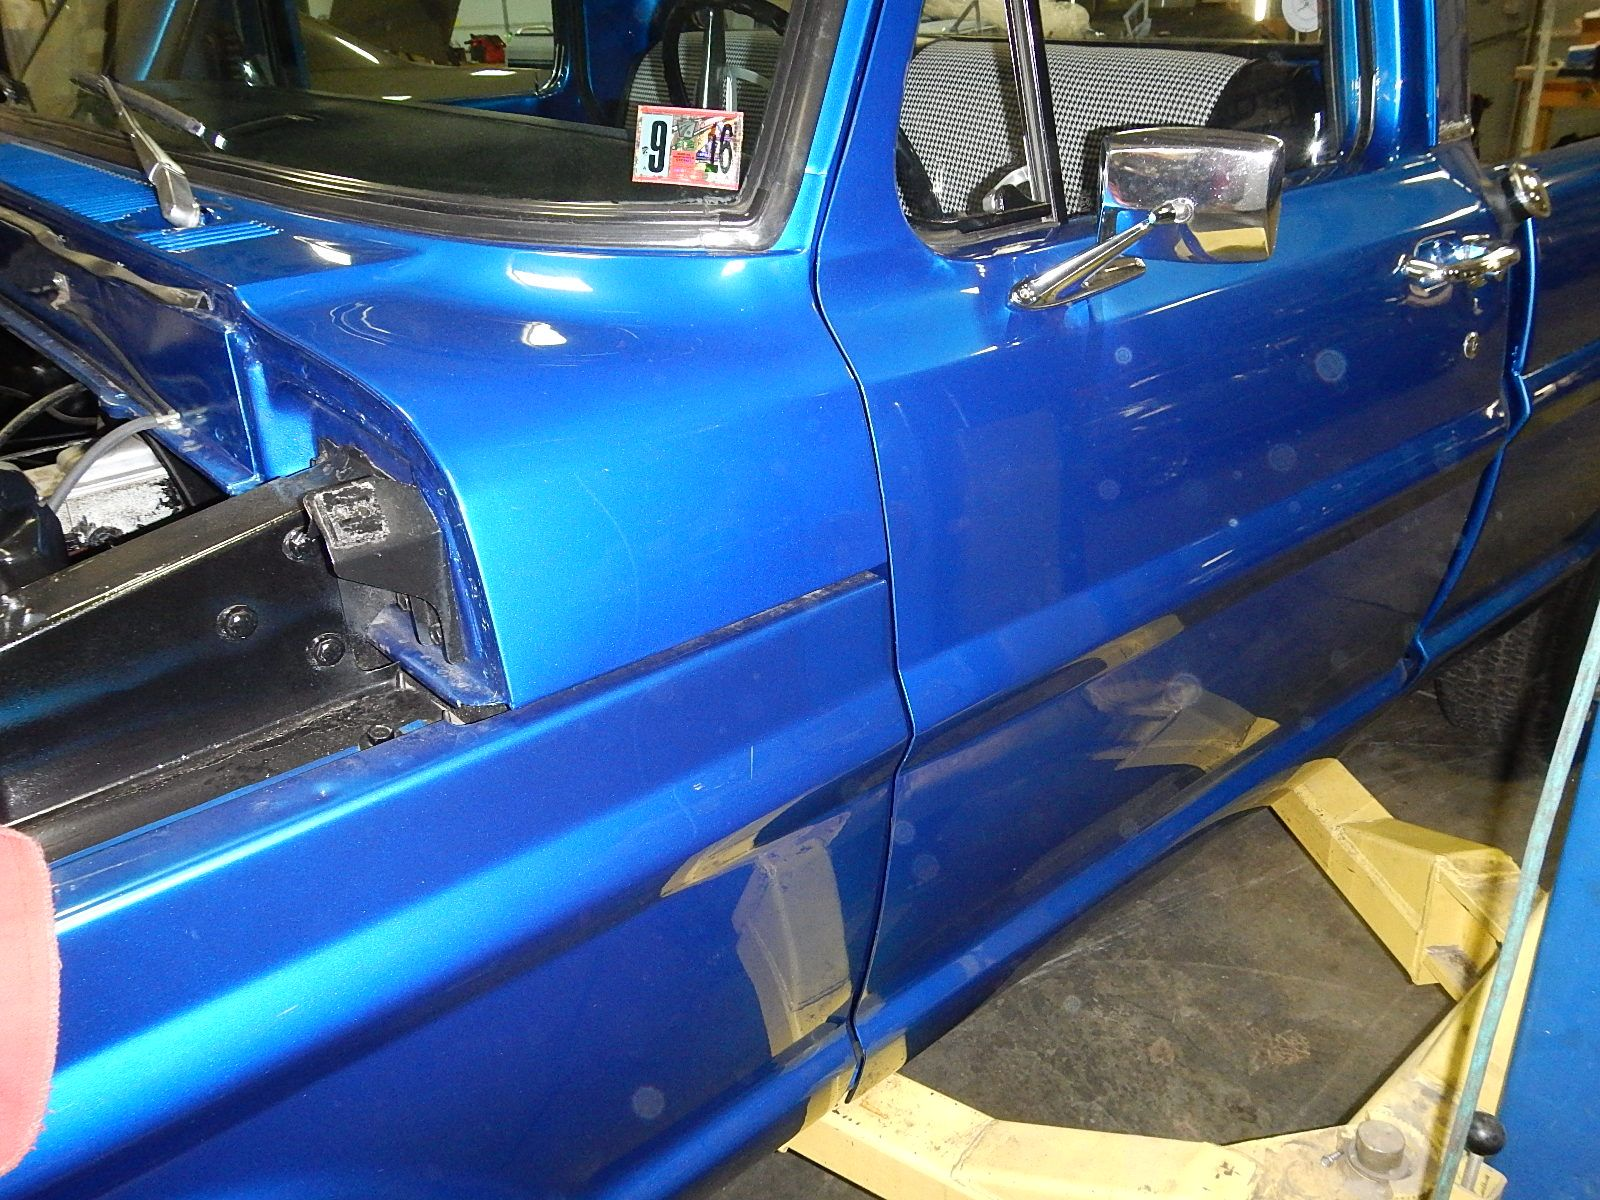 1968 Ford F-100 Front End Swap - Mercury Crown Vic  004.jpg